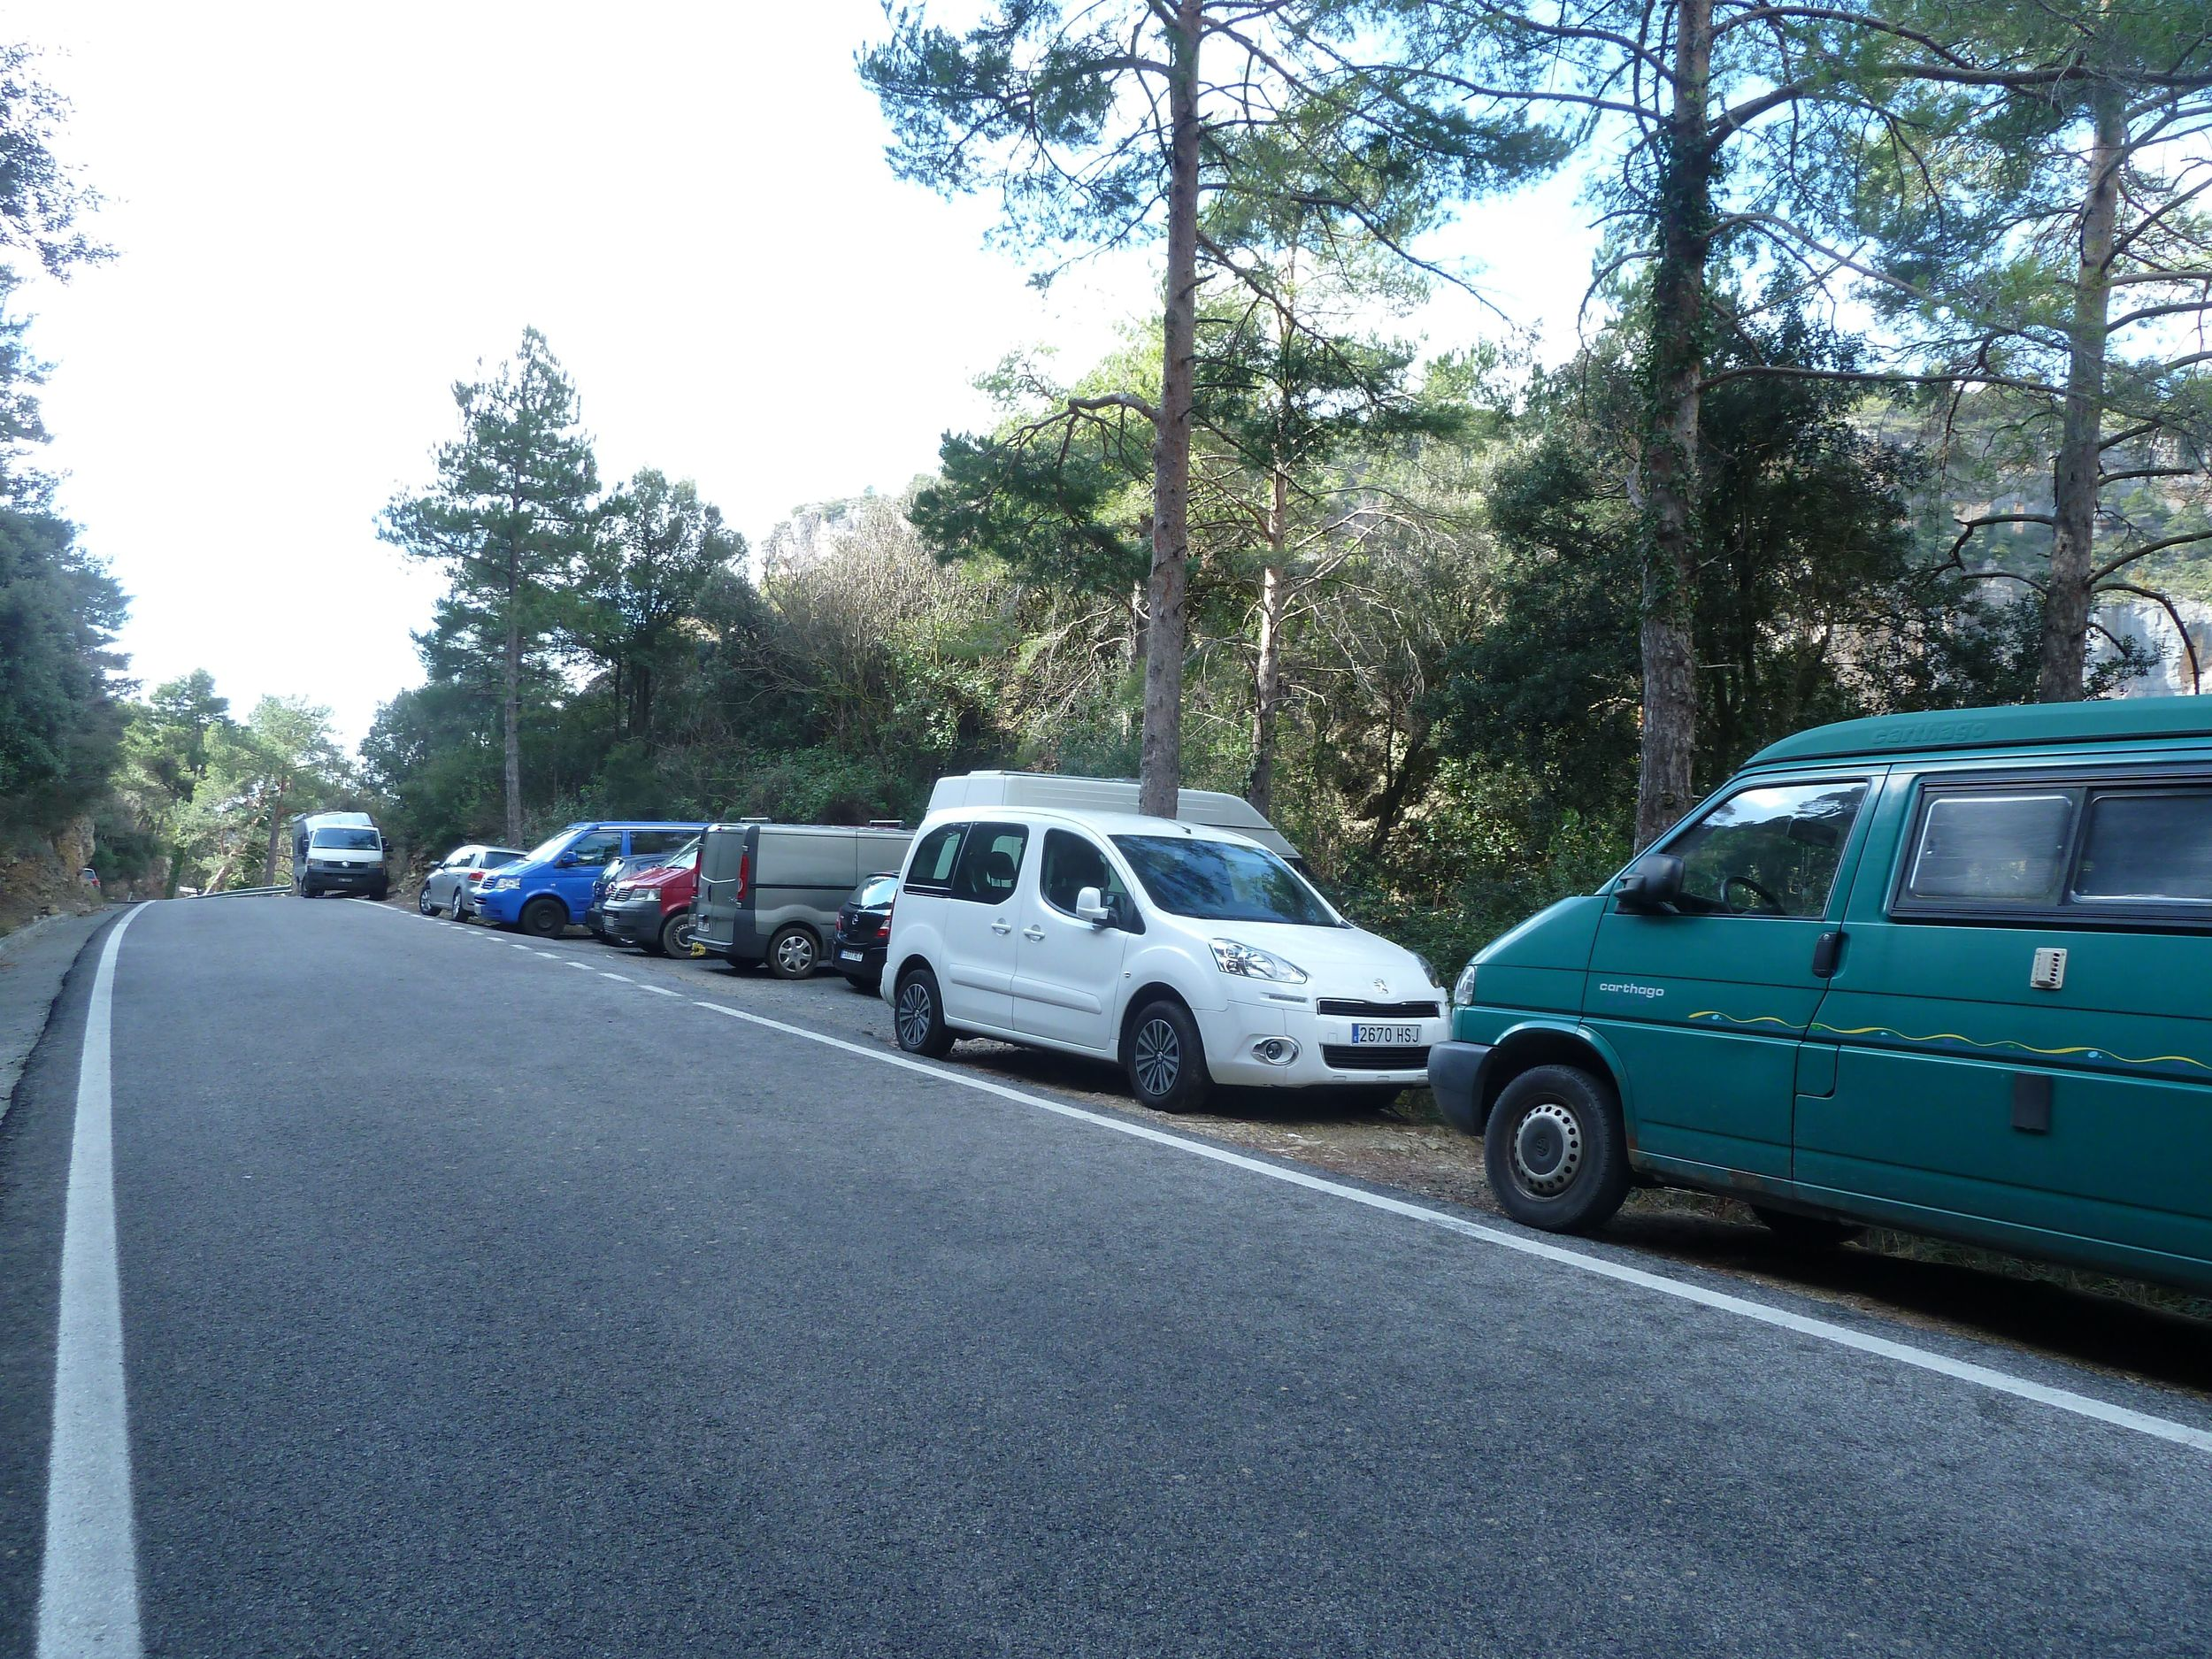 One of the busy parking areas in Siurana valley - this is on a weekday!